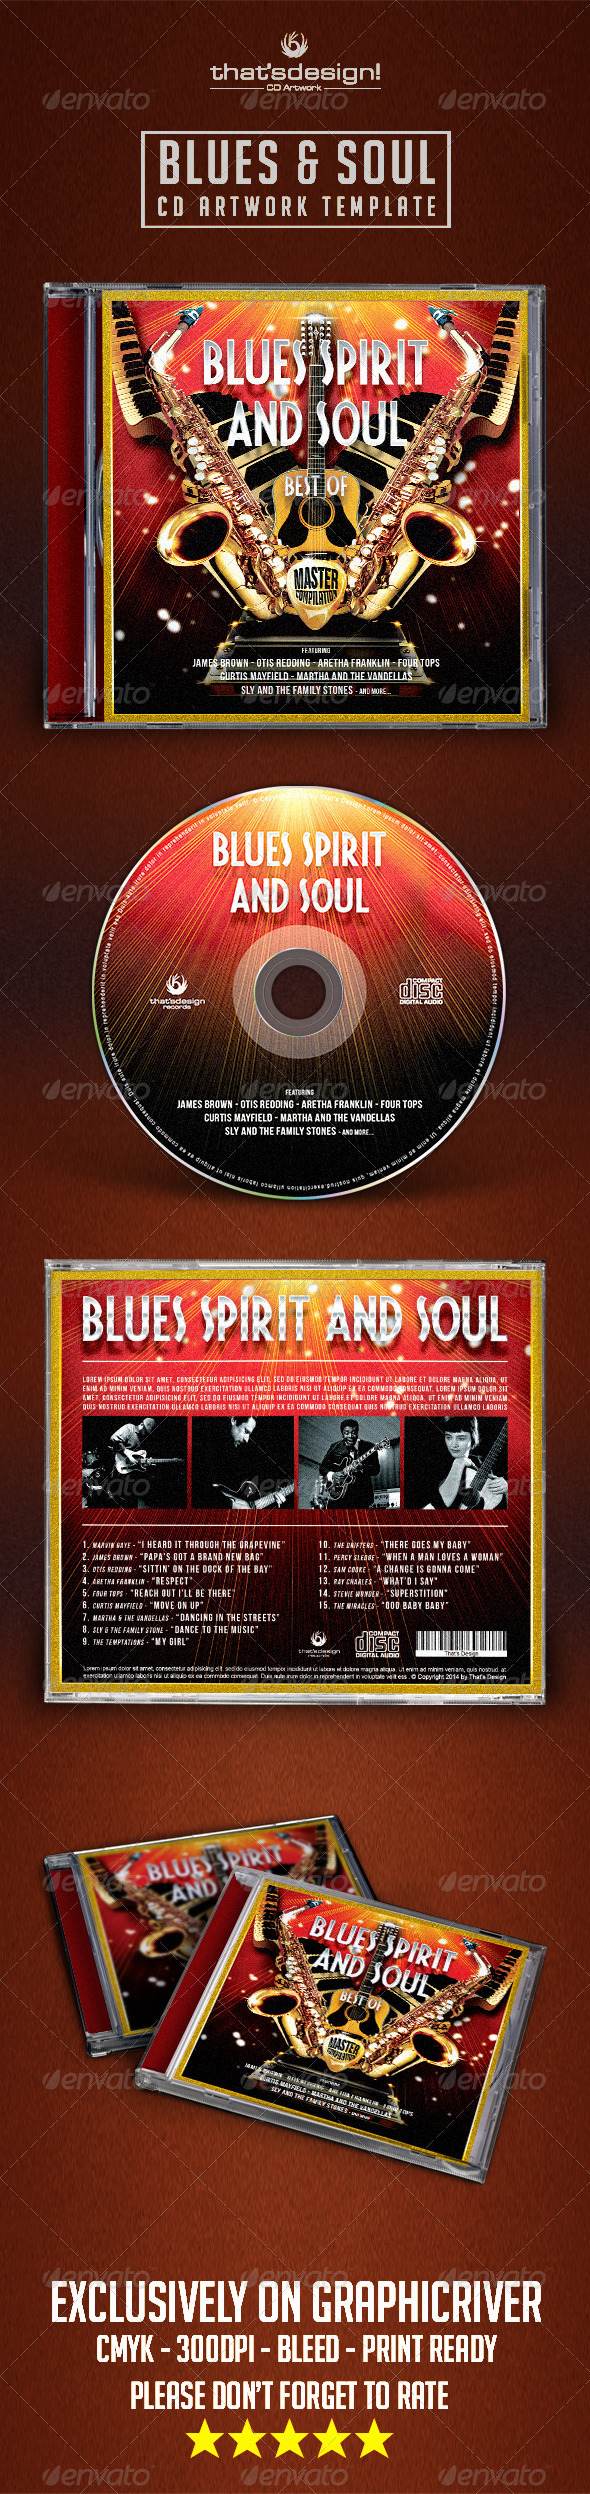 GraphicRiver Blues and Soul CD Artwork Template 8028650